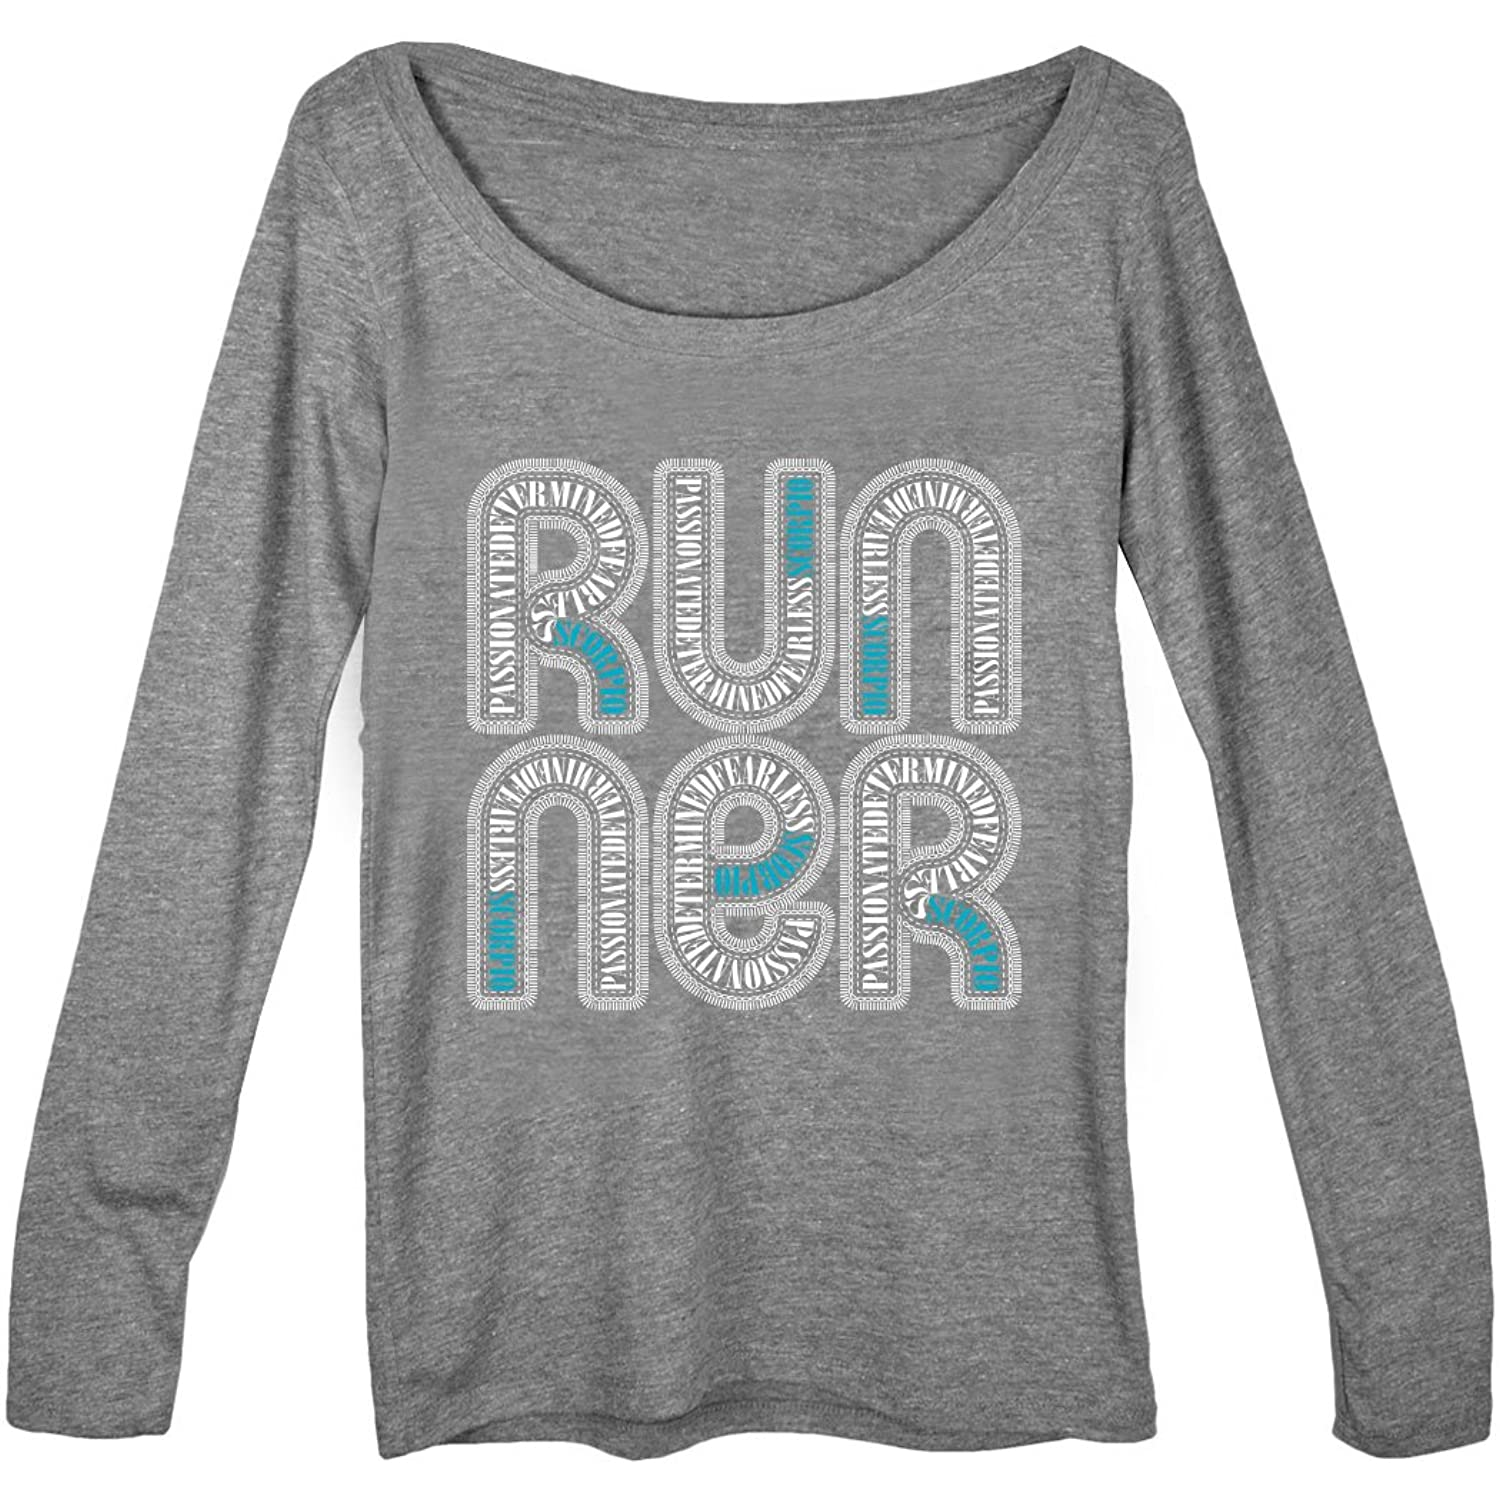 Gone For a Run Women's Runner Scoop Neck Long Sleeve Tee Scorpio Zodiac Runner